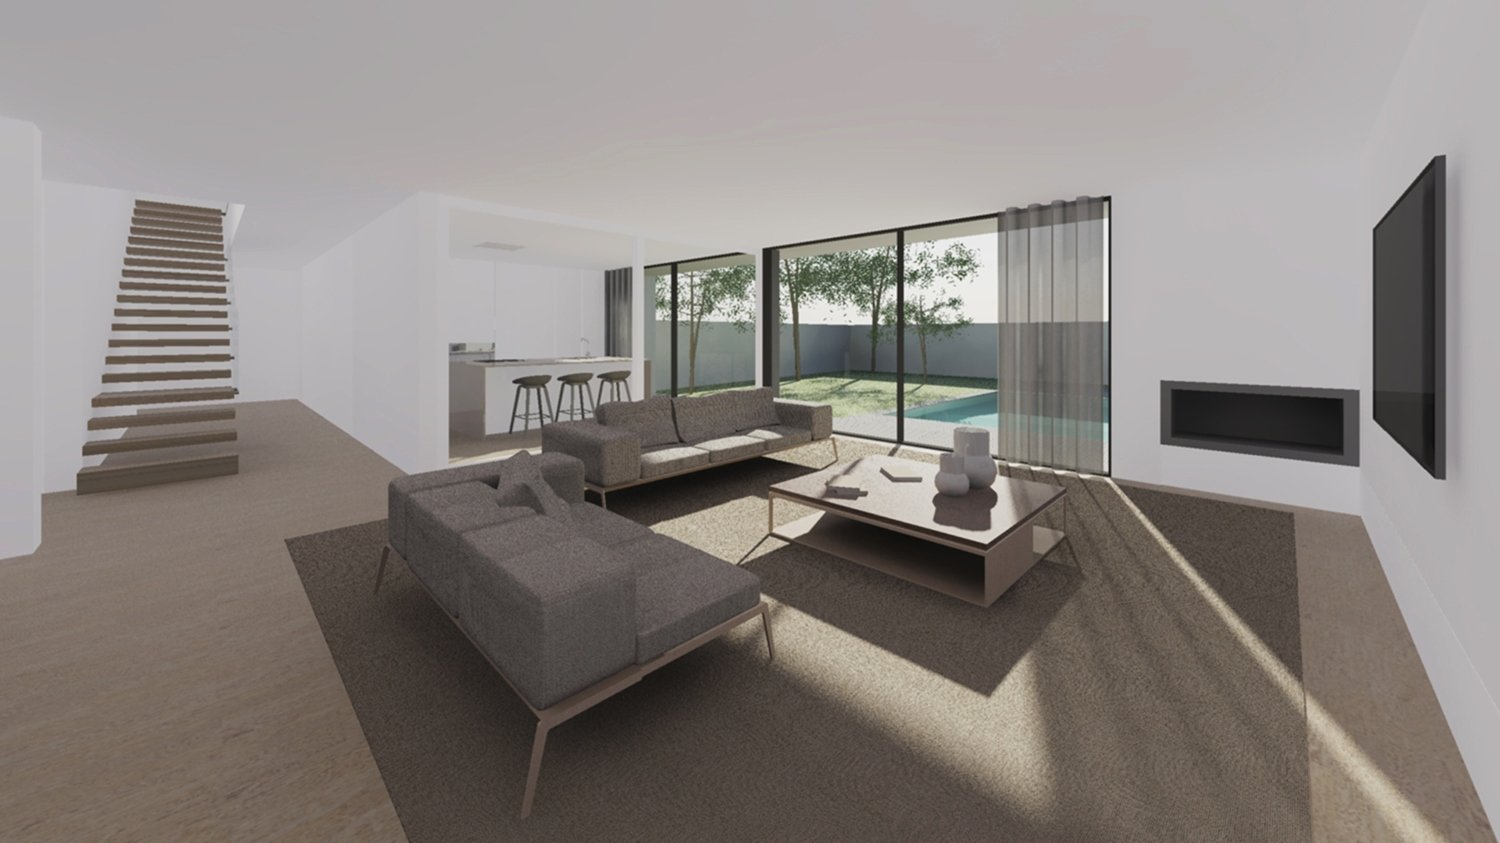 interior view, from the living room Raulino Silva Architect